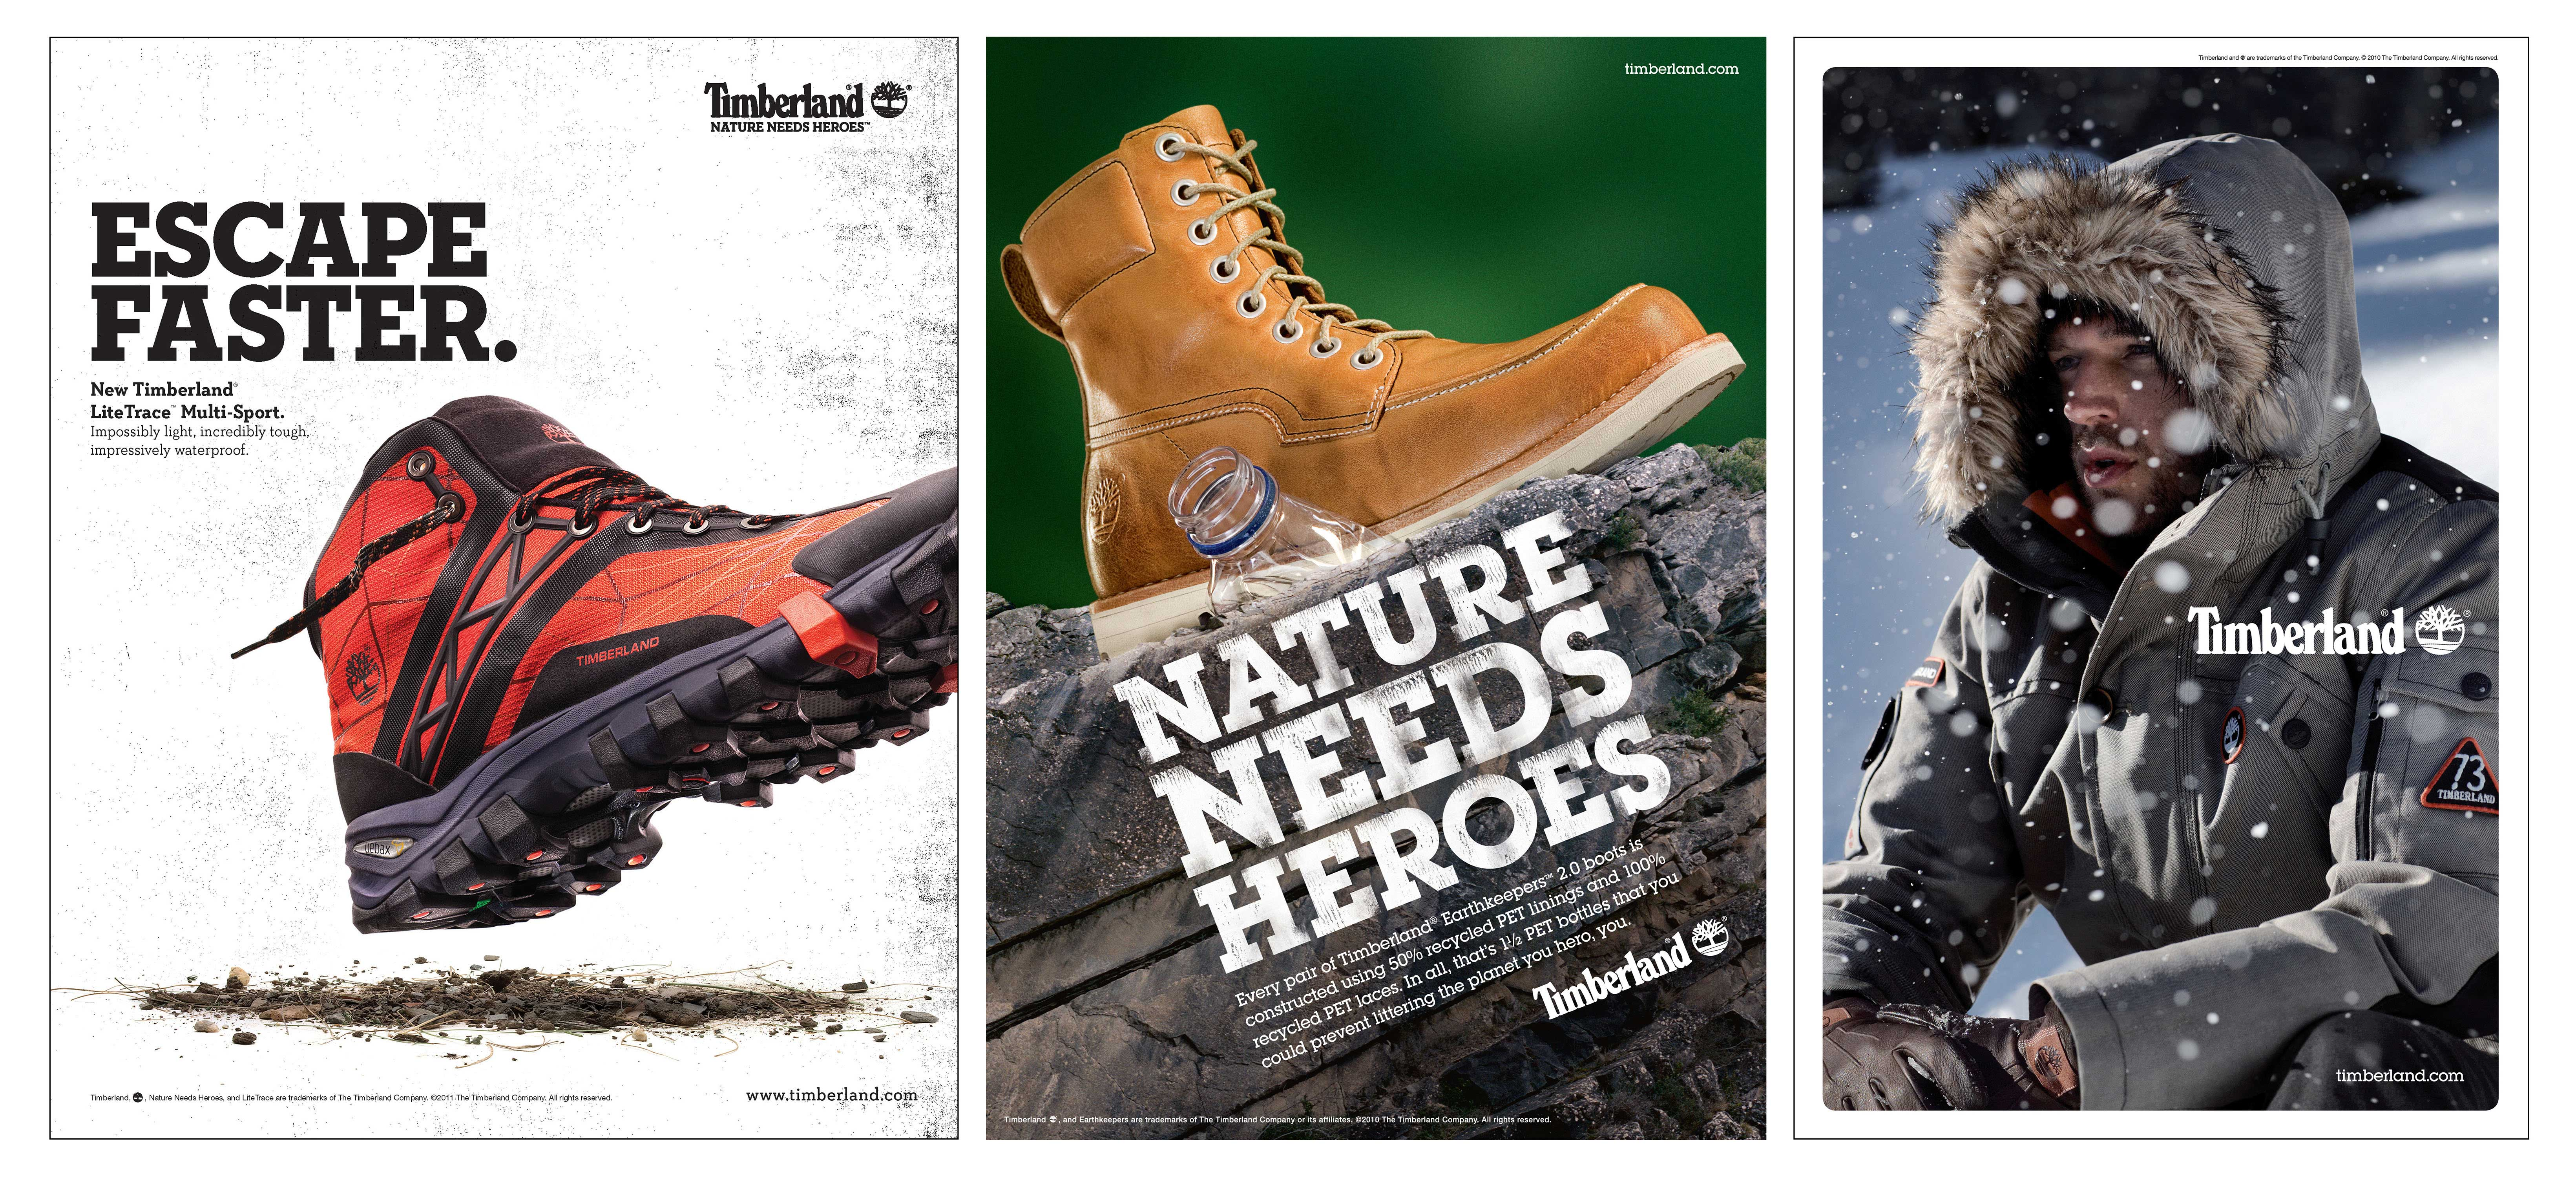 How Timberland turned its sales around Fortune  Fortune